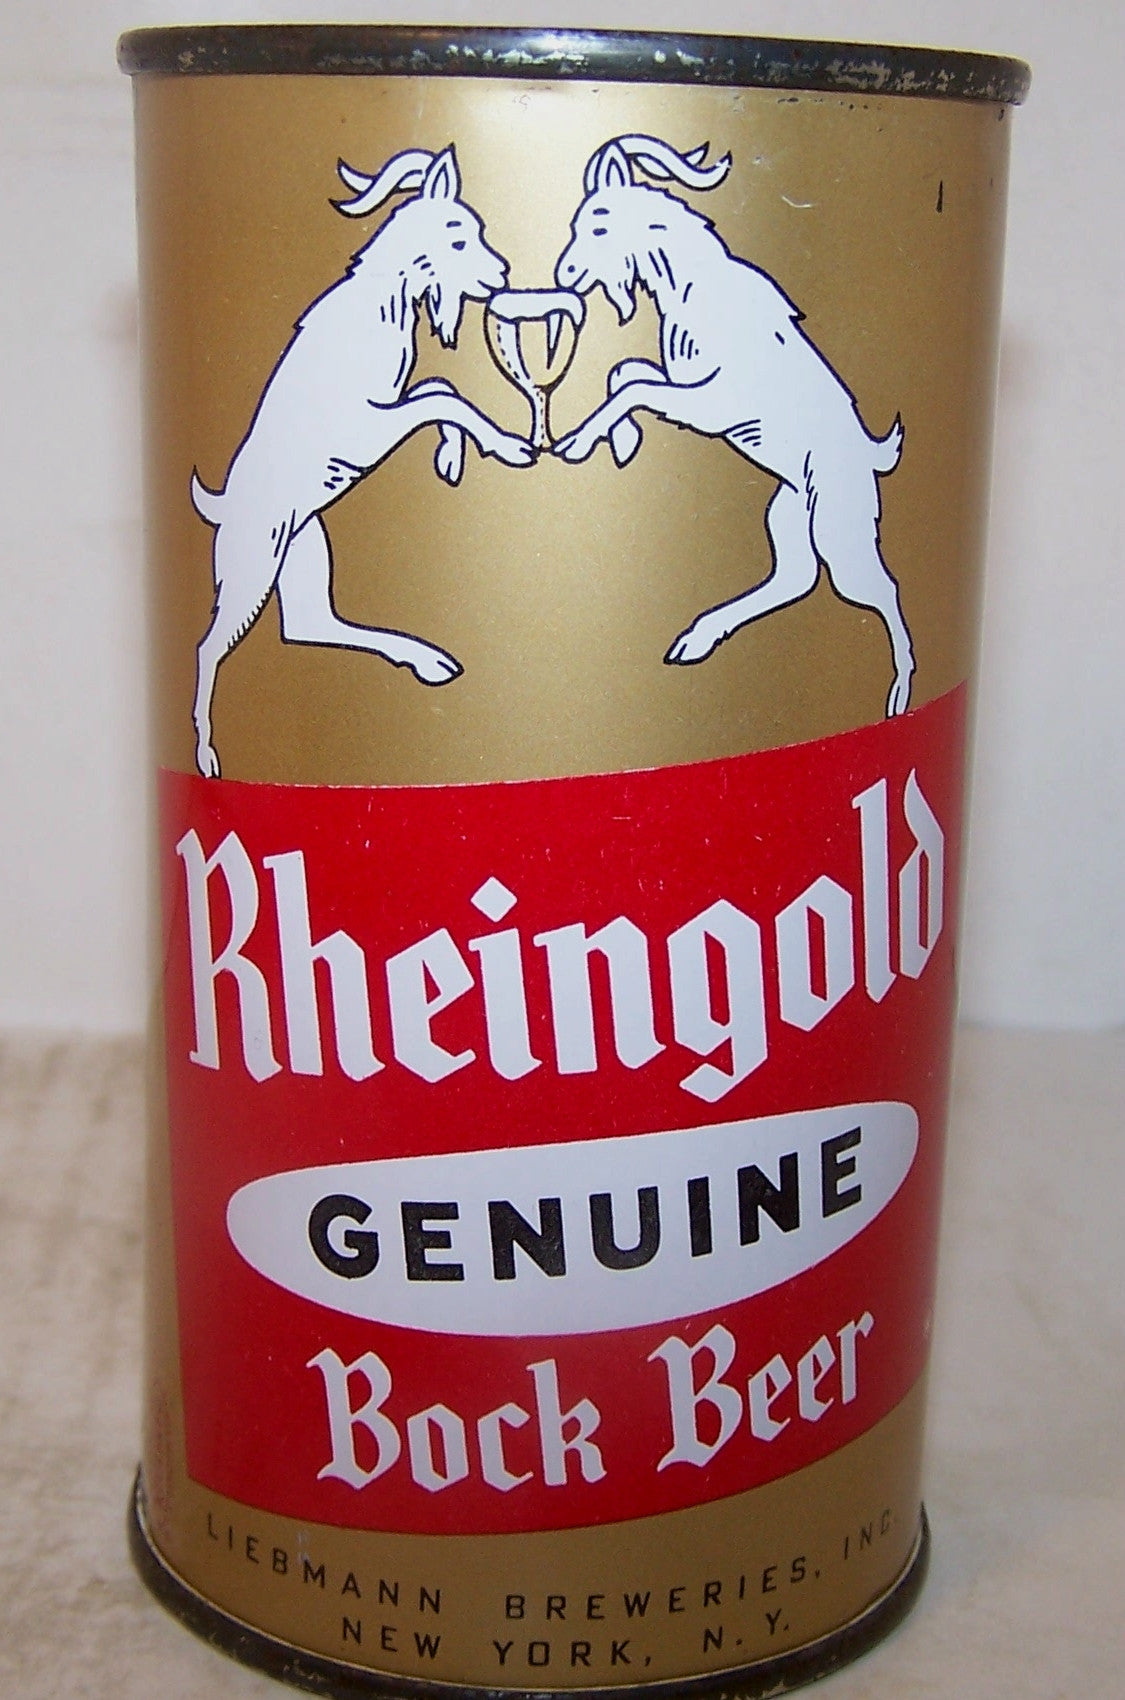 Rheingold Genuine Bock Beer, USBC 124-18, Grade 1/1+Sold 4/8/16